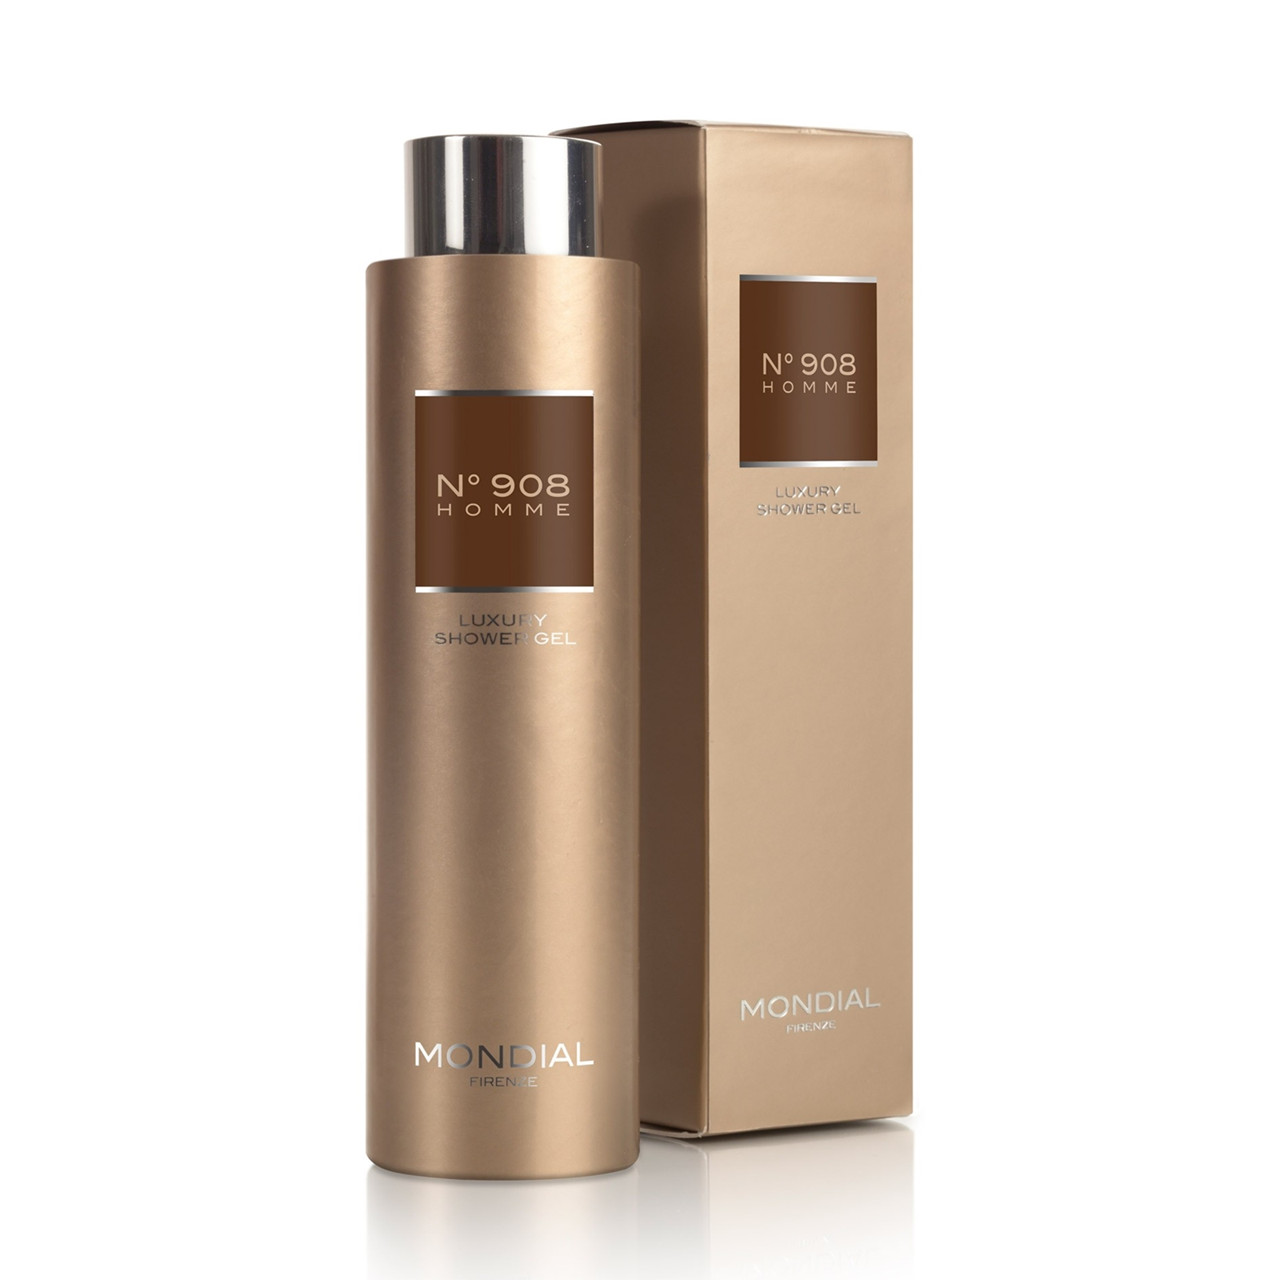 Image of   Mondial N°908 Homme Shower Gel, 250 ml.